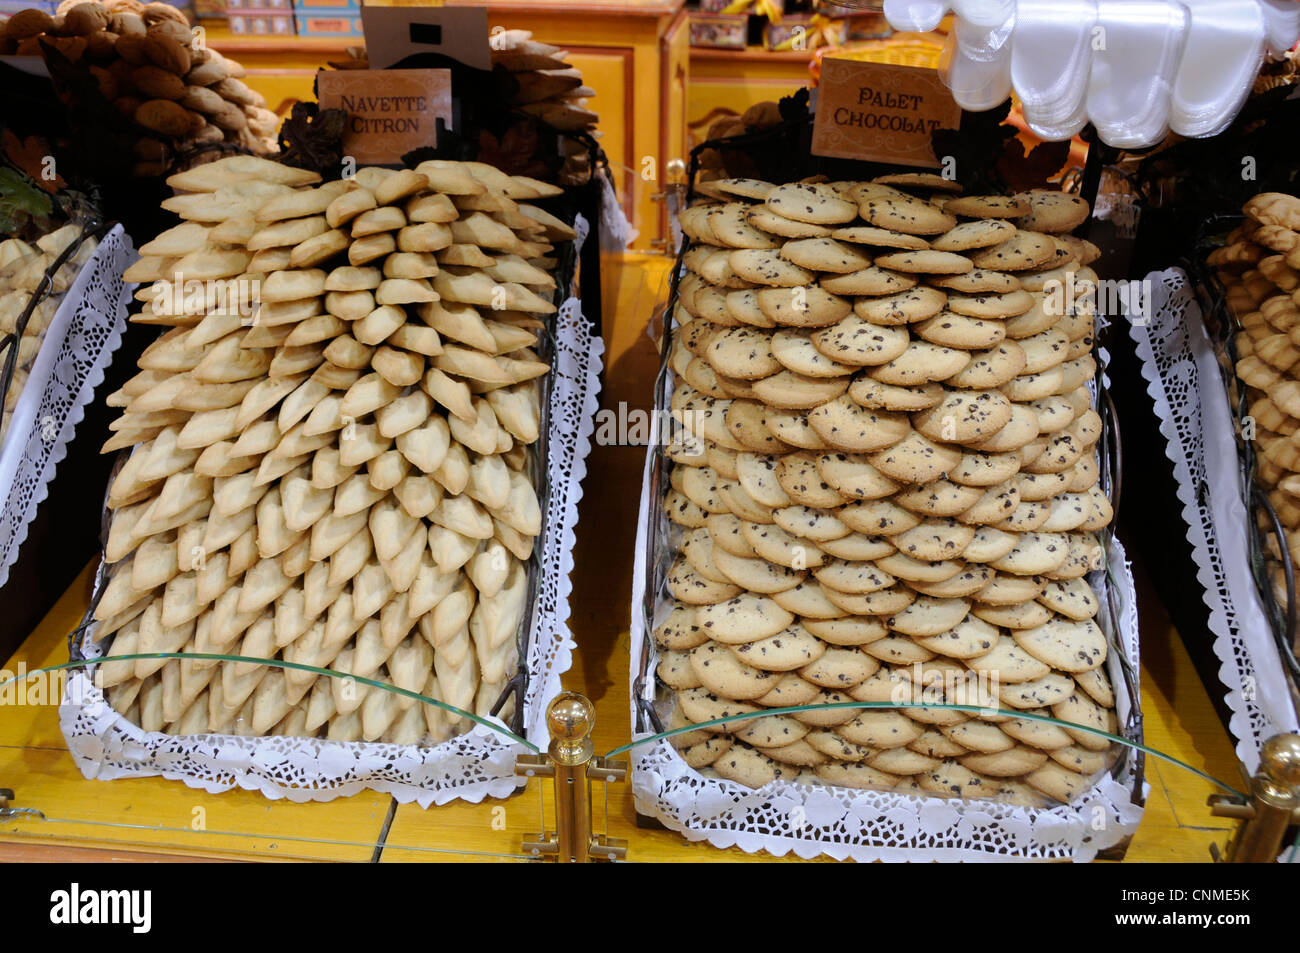 A display of pastries inside the La Cure Gourmande, (The Greedy Cure), Canebiere, Marseille, France - Stock Image